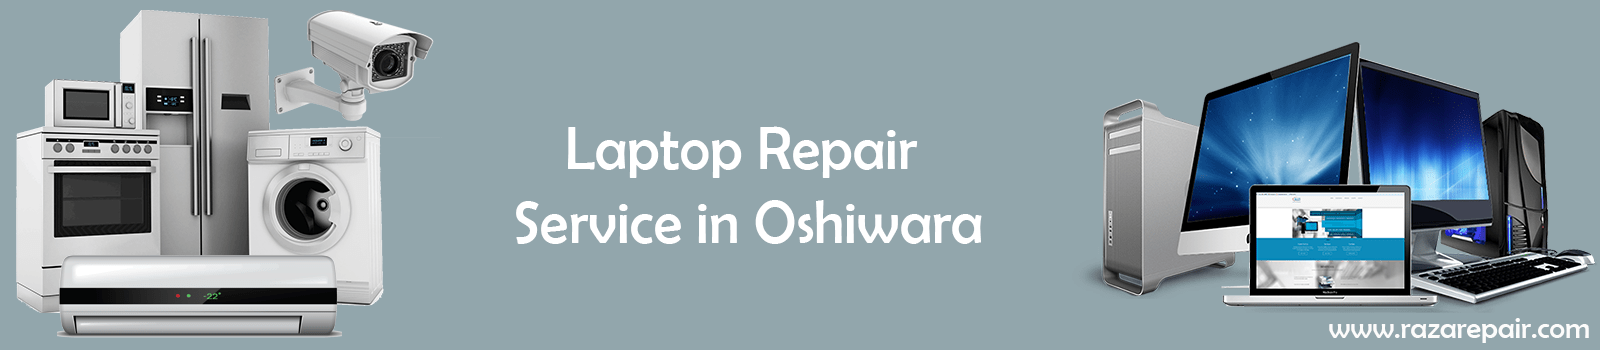 Laptop Repair Service in Oshiwara | Call Now 8655112626